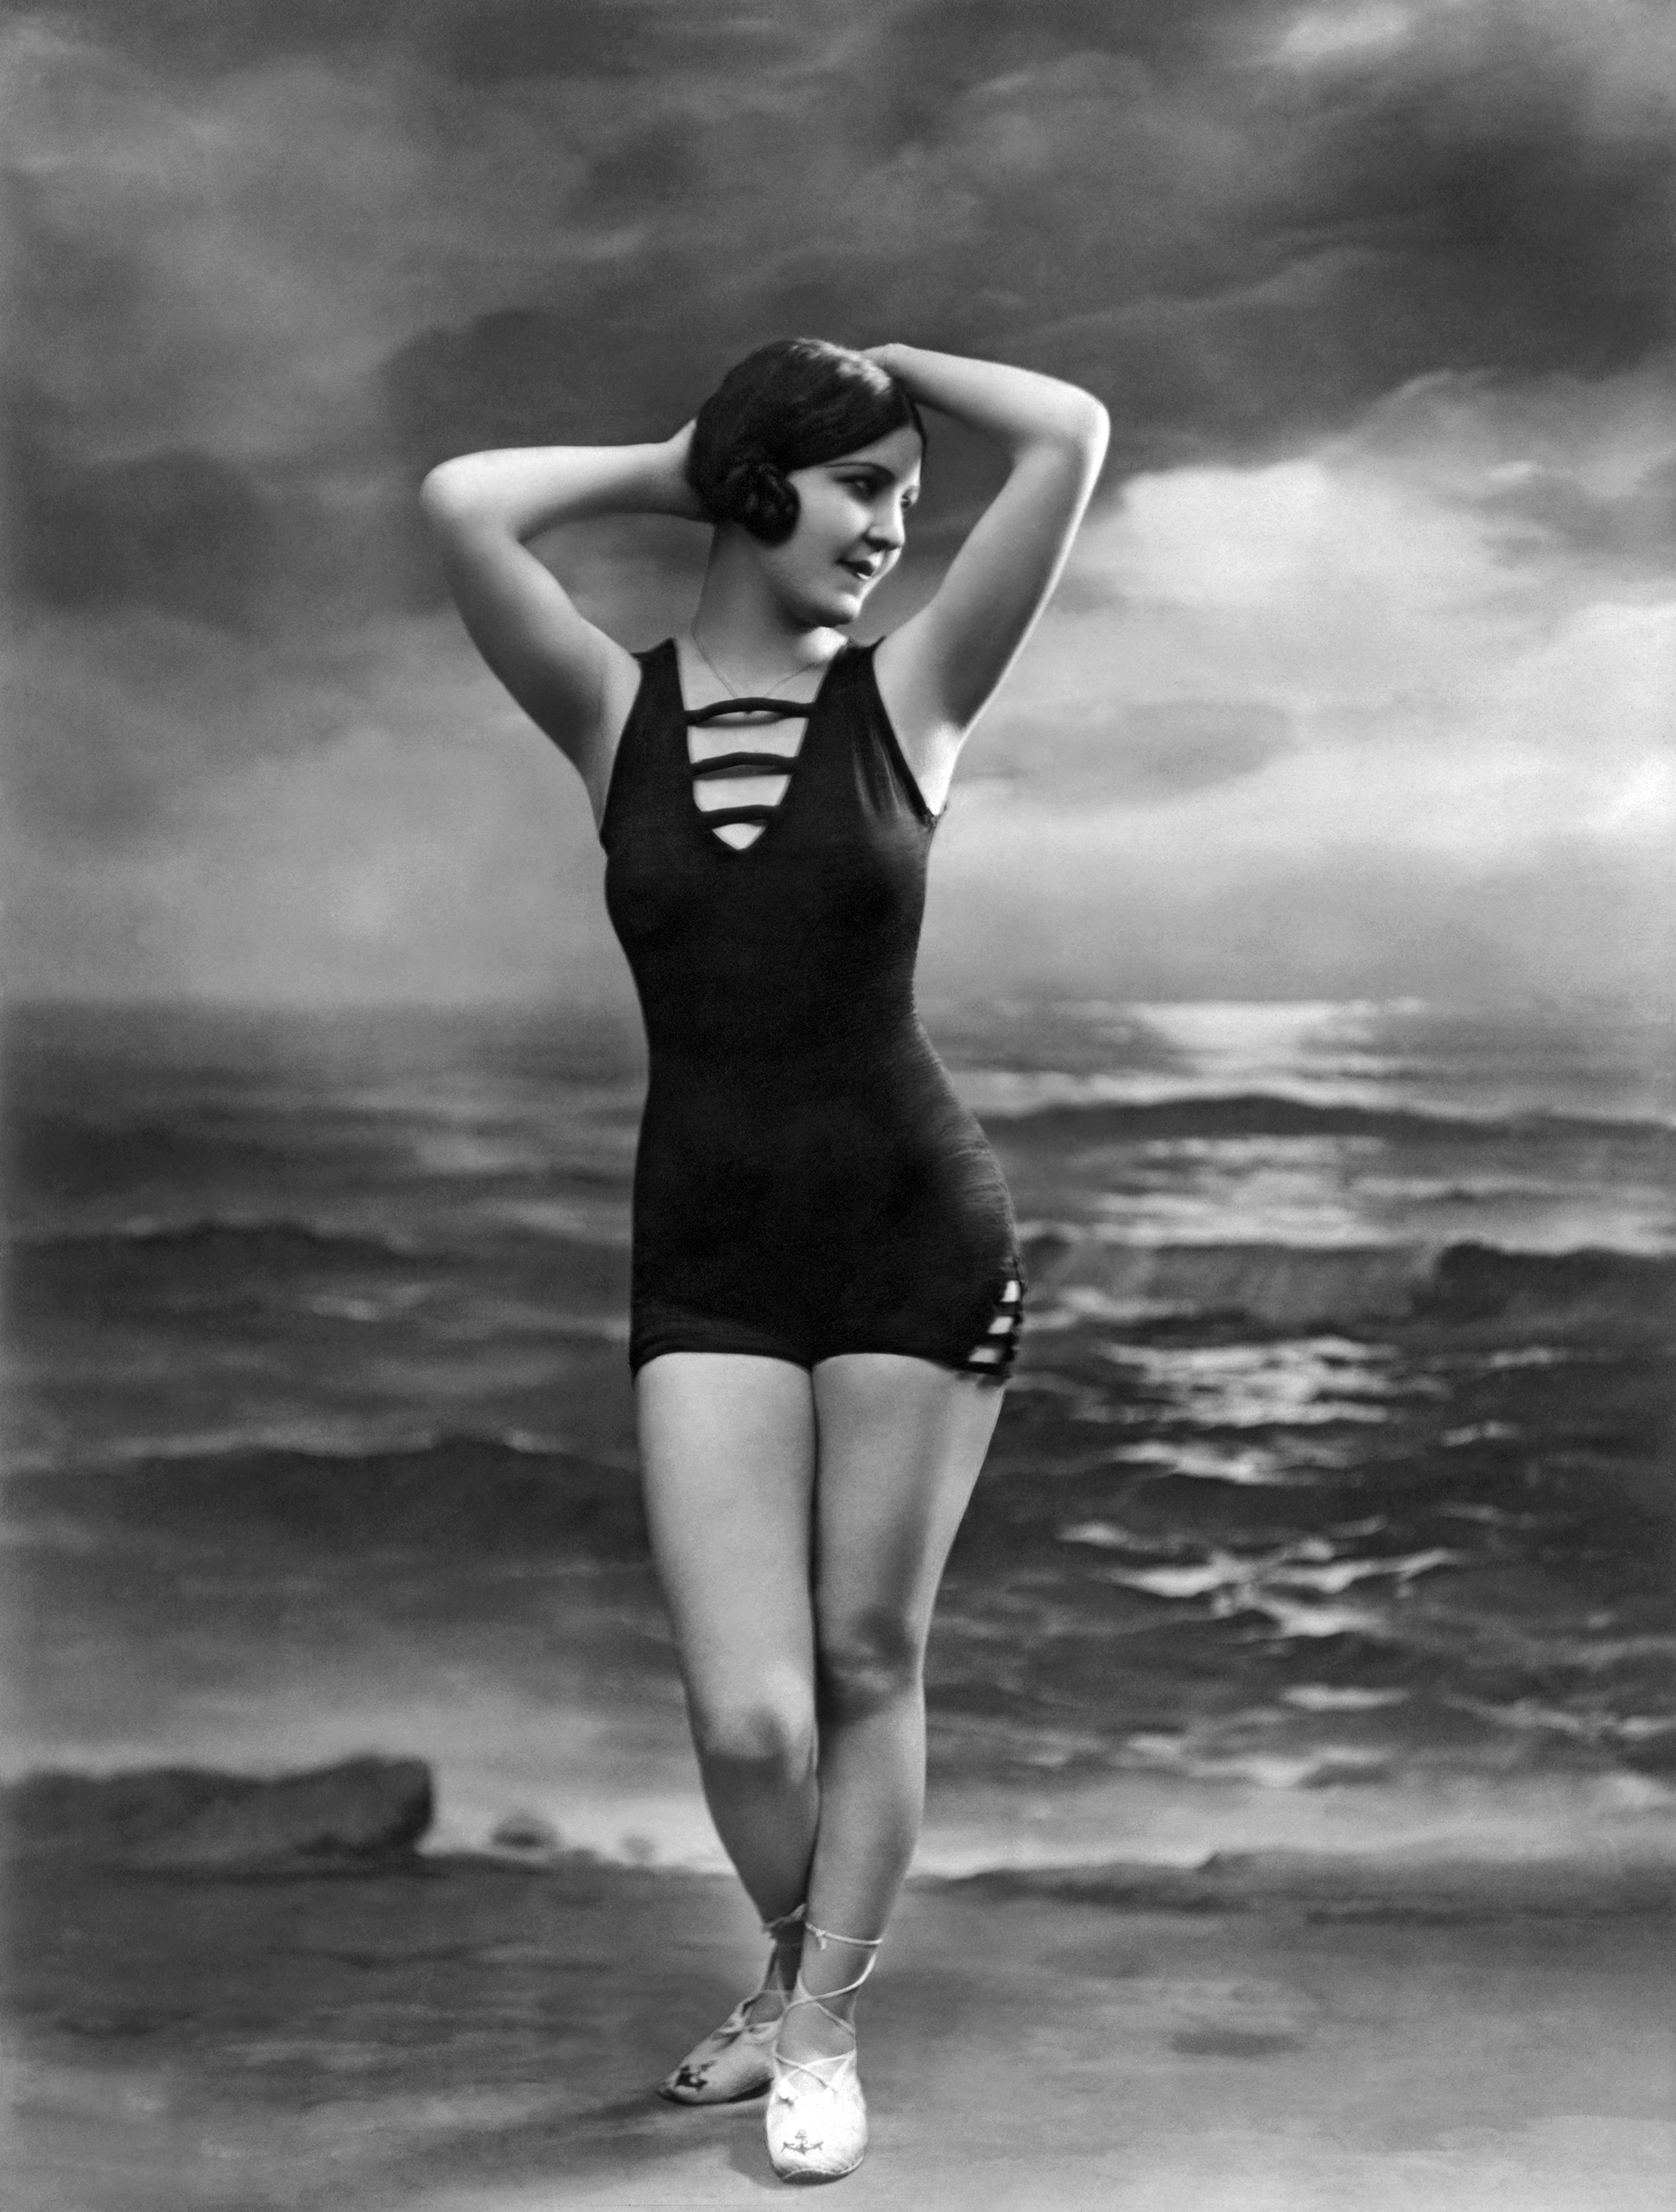 A woman in a bathing suit poses in front of a studio ocean scene, Paris, France, circa 1920.